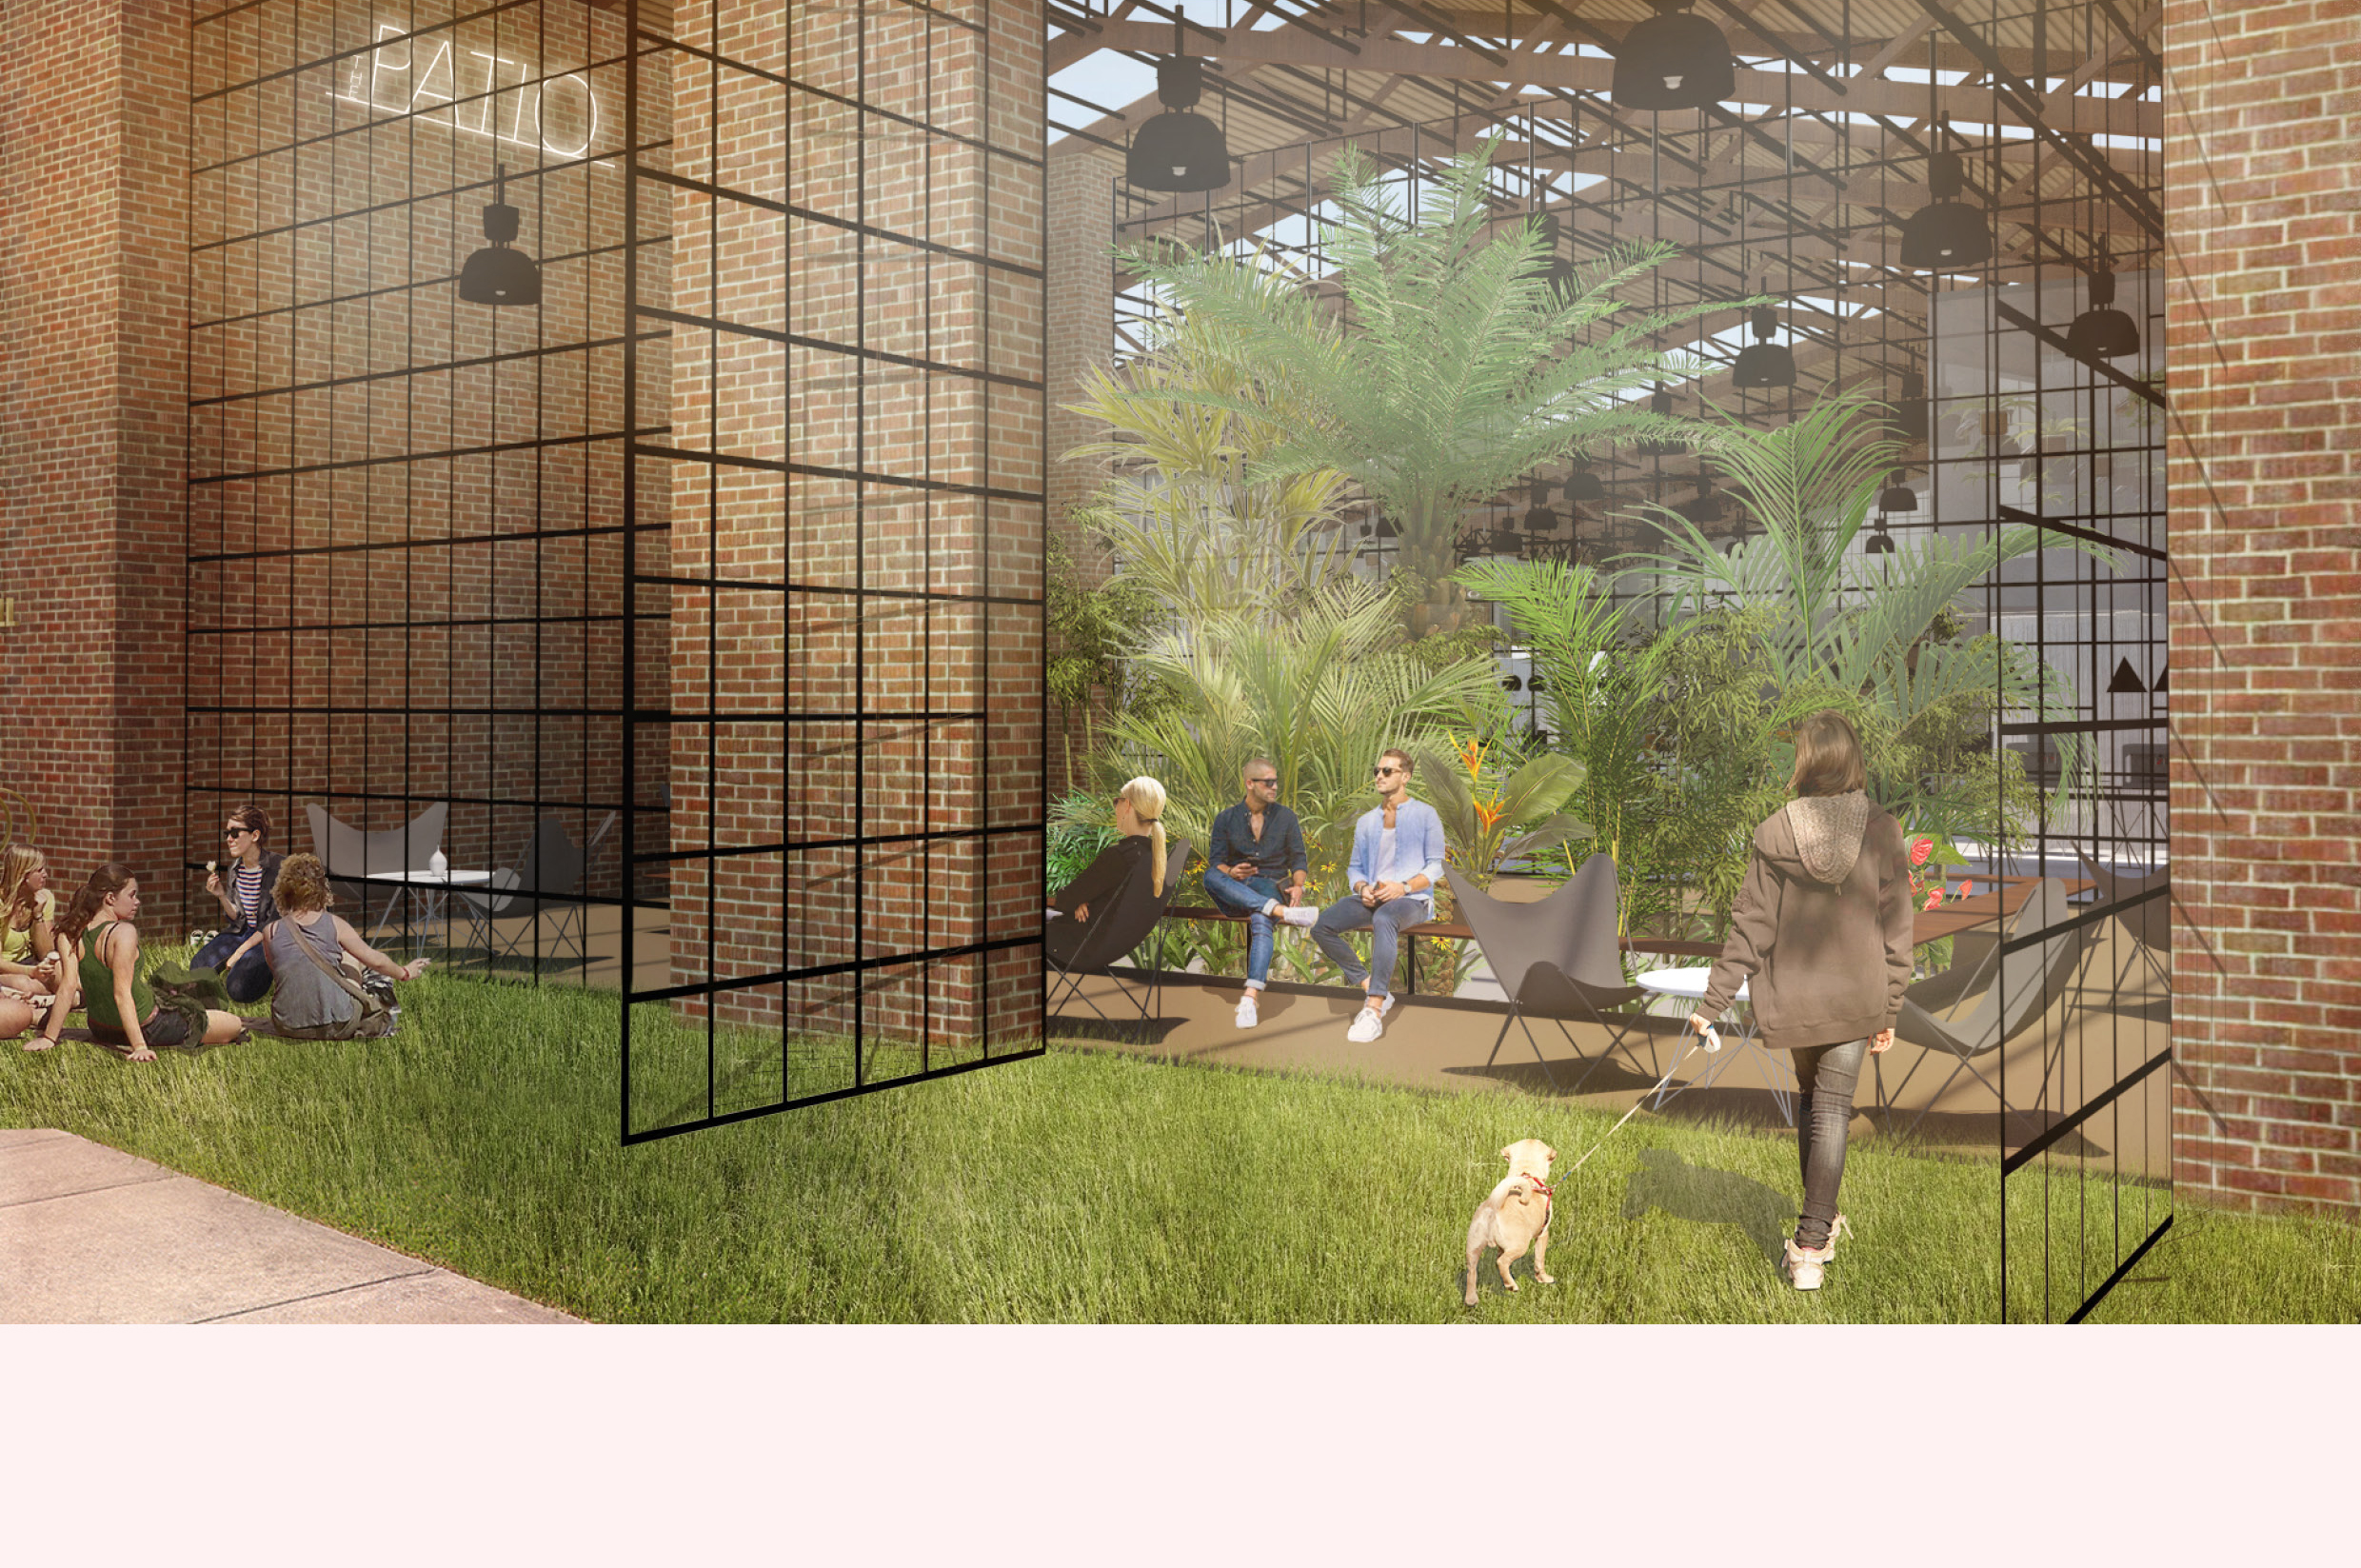 It goes without saying that fresh air and greenery make us feel happier and healthier. Many offices of the future will take this further and grow their own vegetables for use in a communal kitchen.